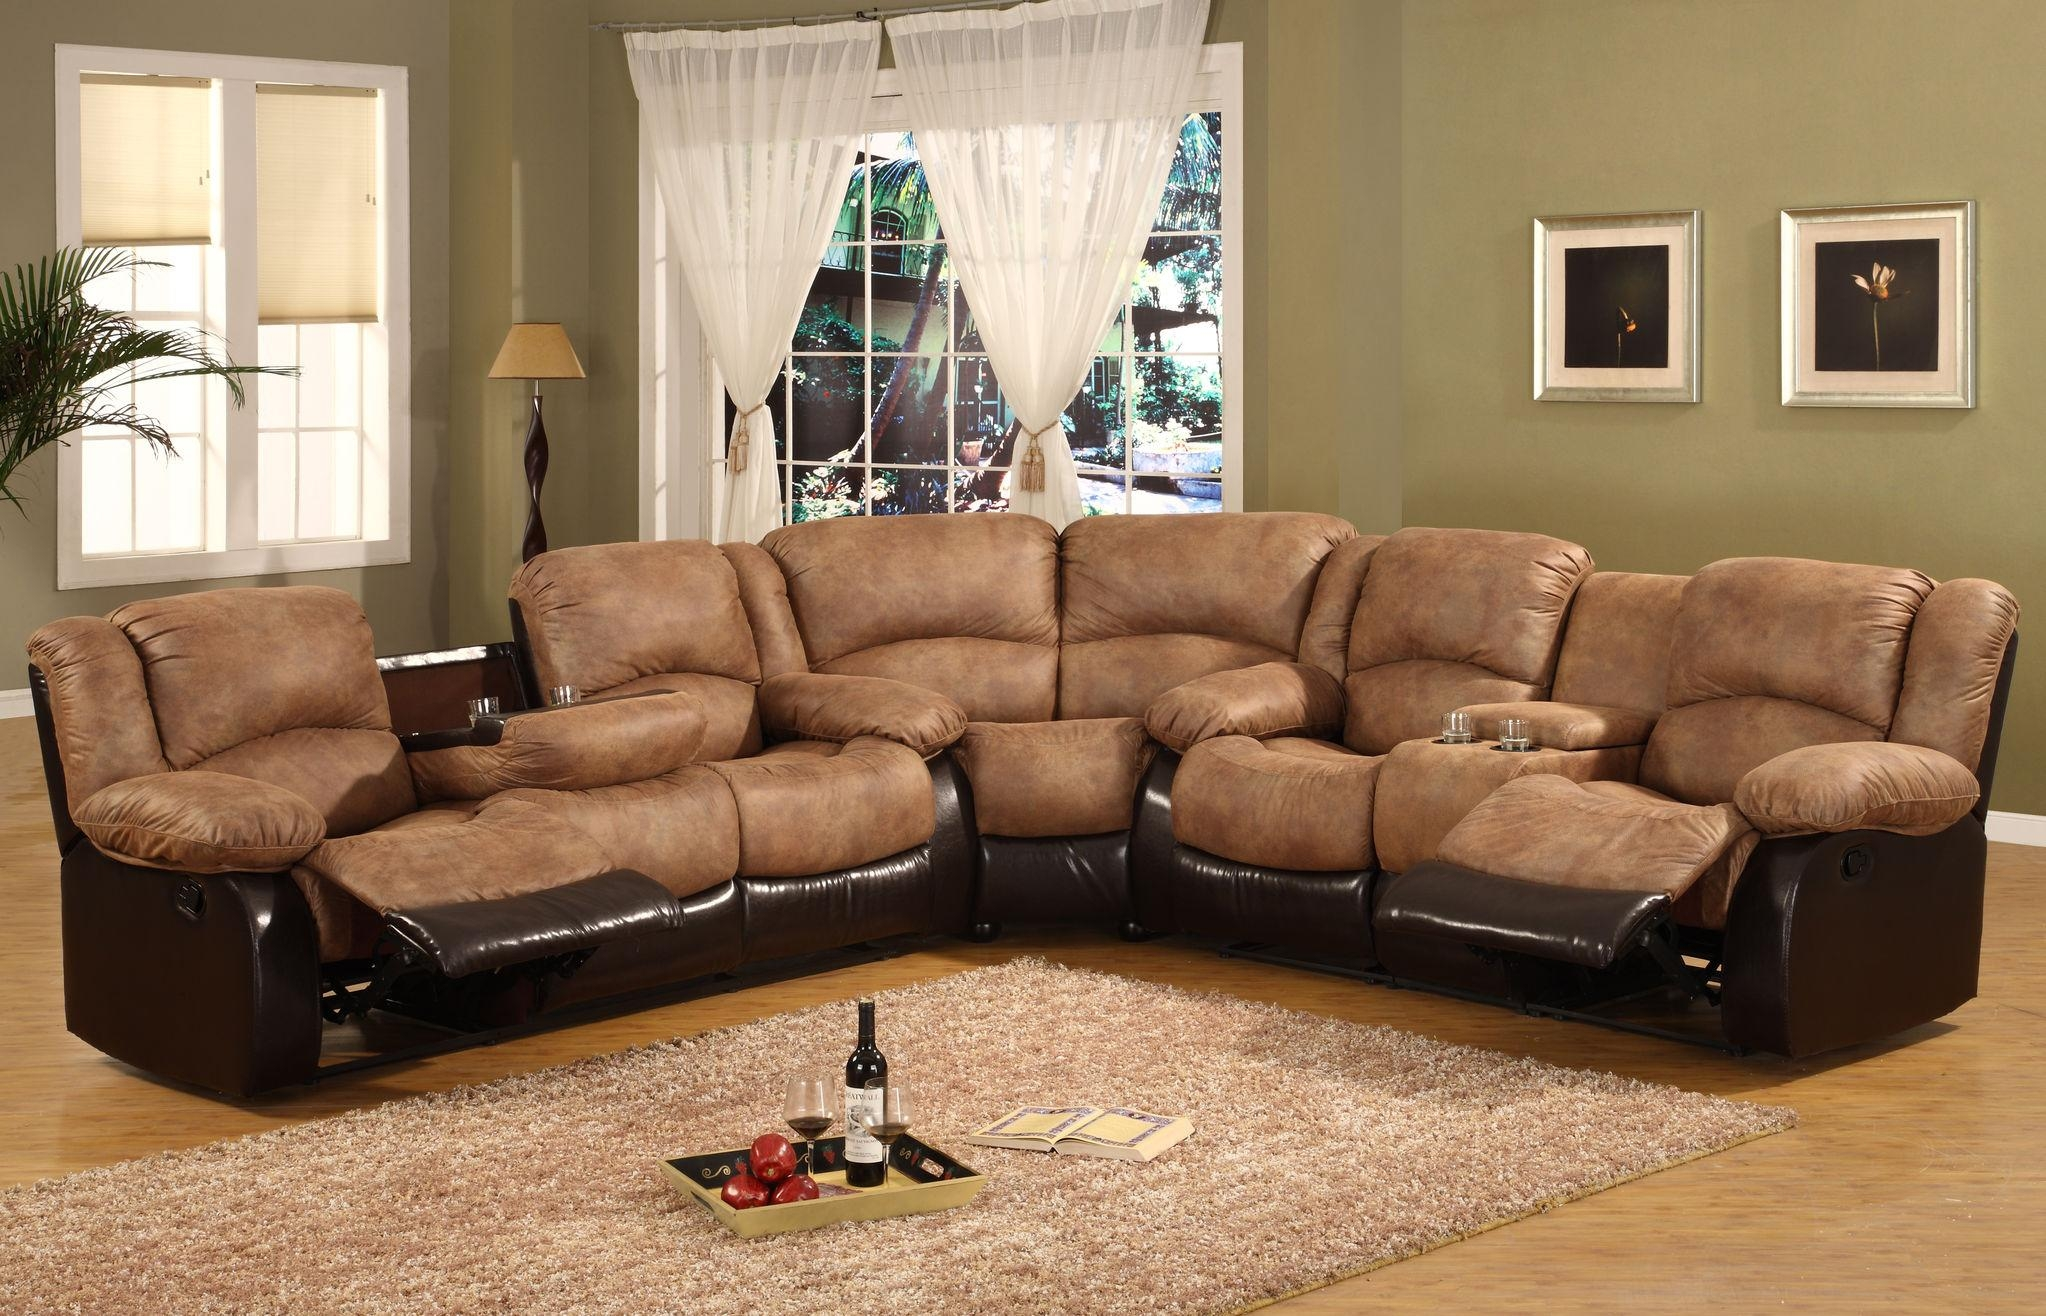 Furniture: Sleeper Sectional | Lazy Boy Sectionals | Reese Pertaining To Lazy Boy Leather Sectional (View 13 of 20)